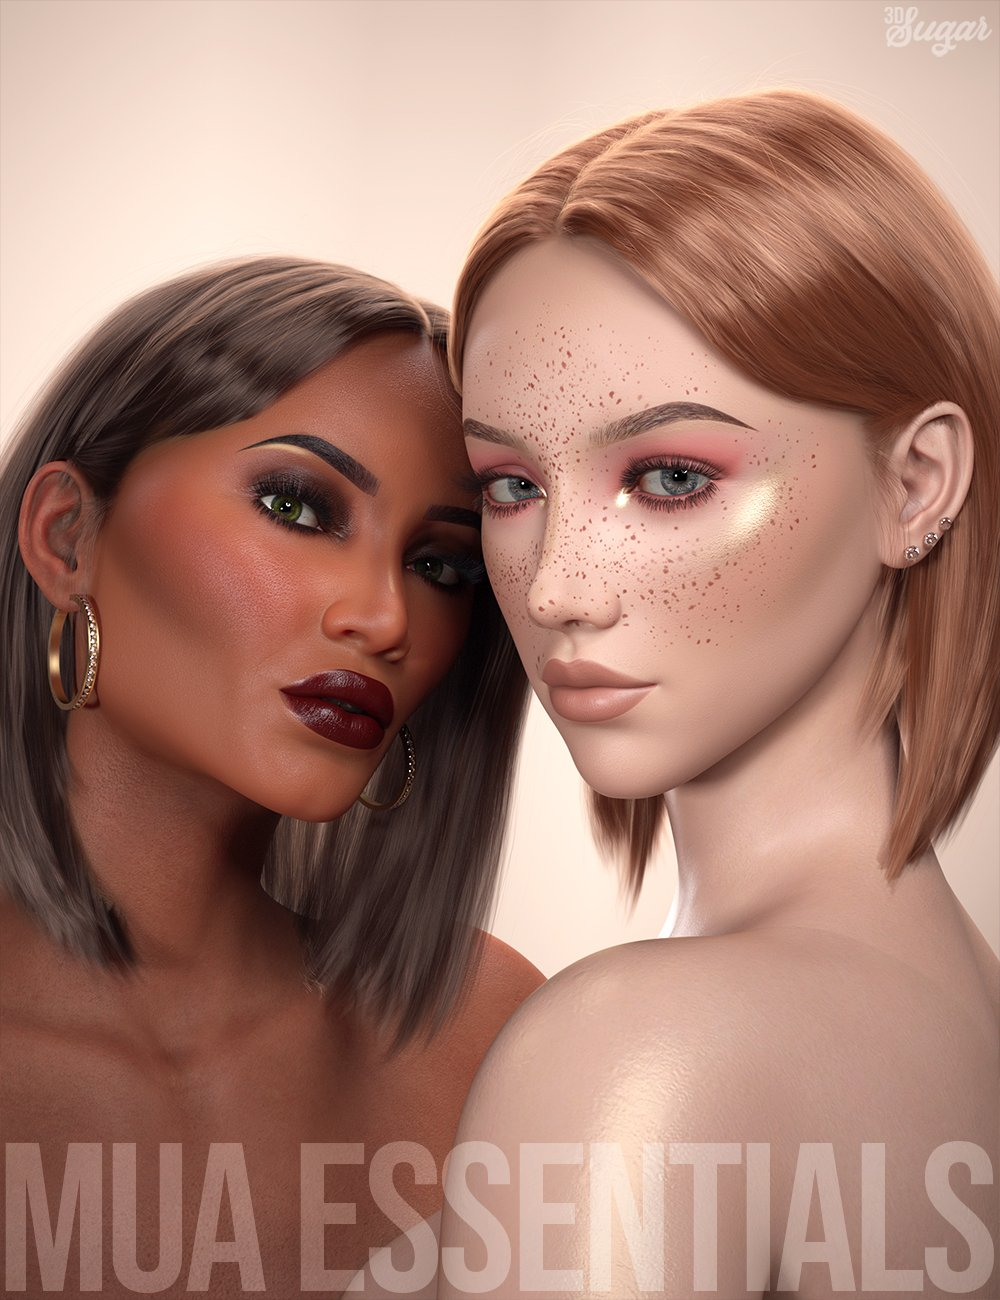 Makeup Artist Essentials L.I.E Poses and Expressions by: 3D Sugar, 3D Models by Daz 3D